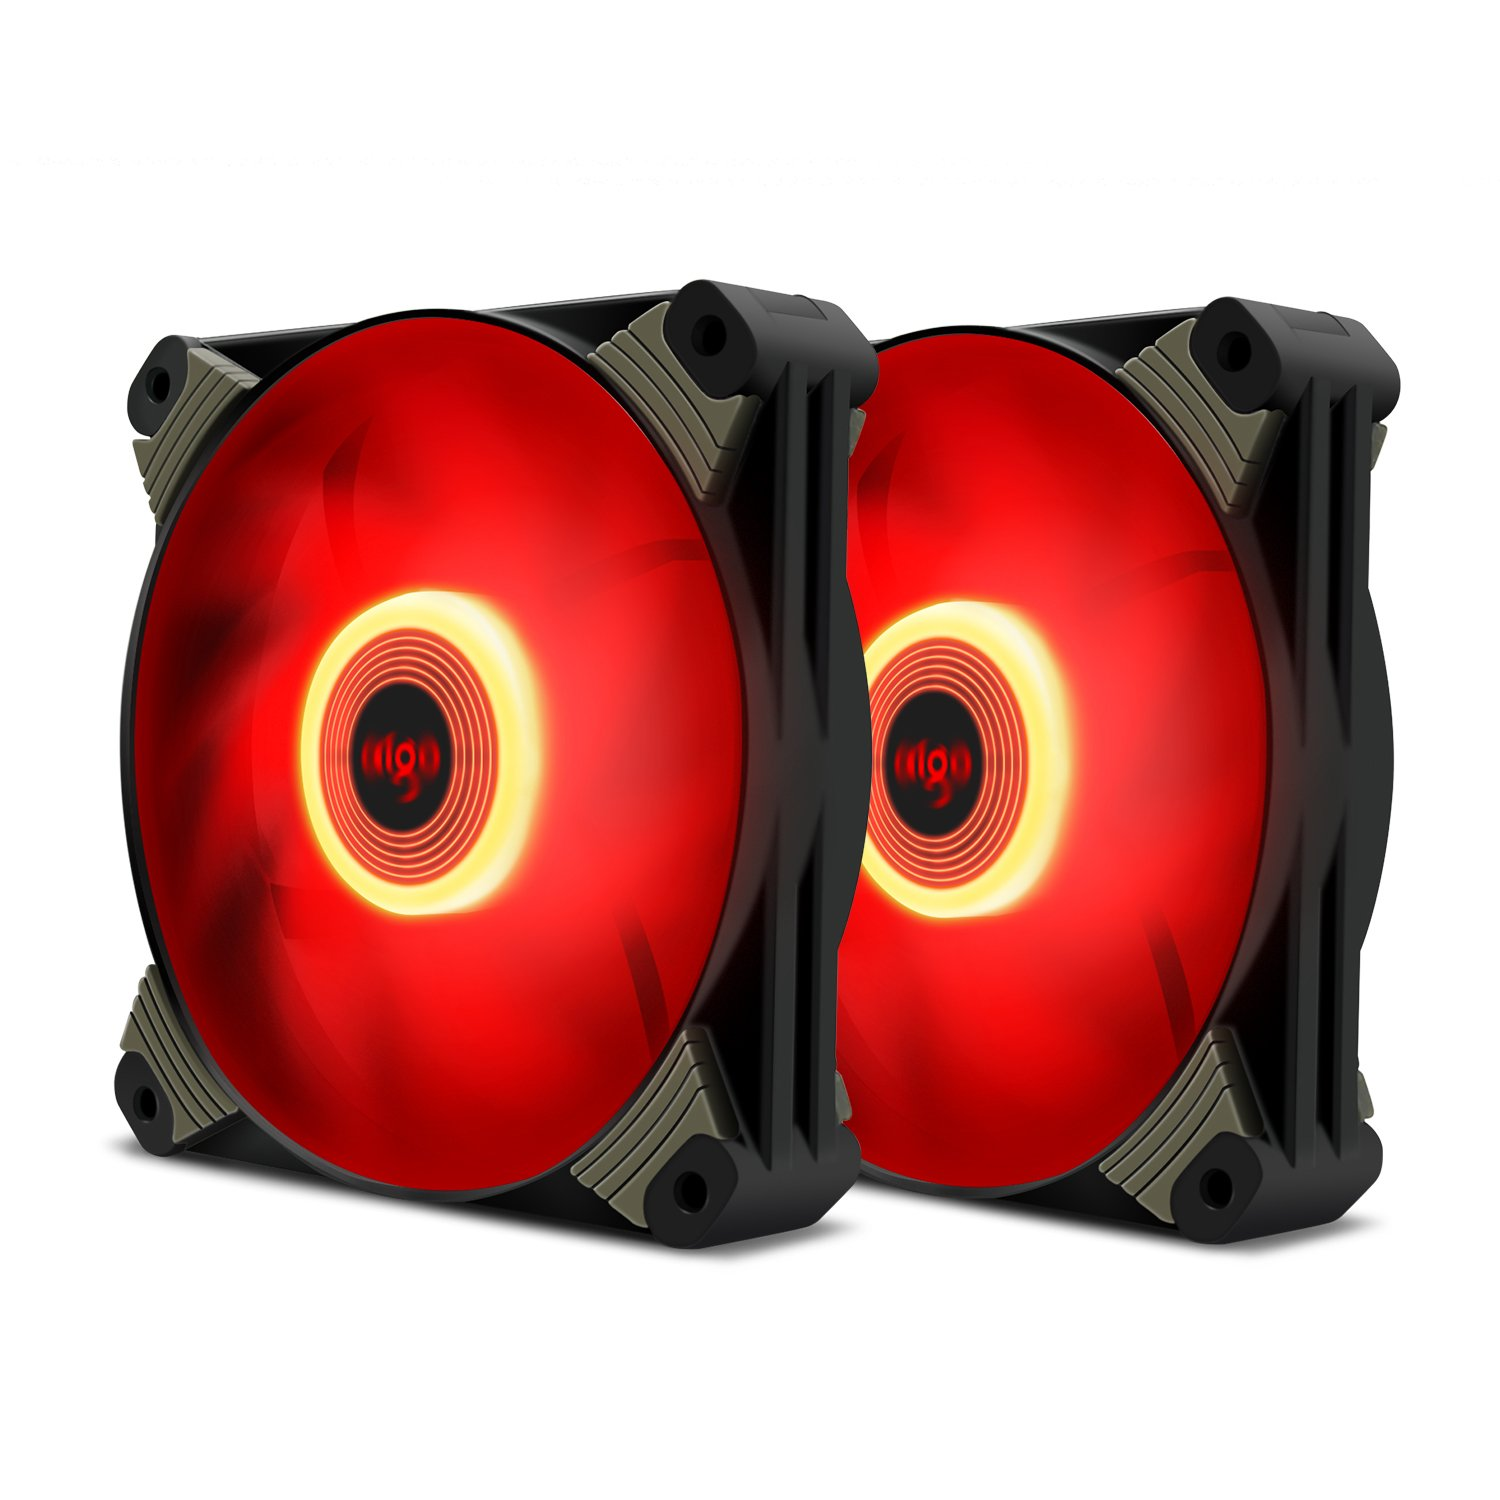 Aigo Icy-series X1 120mm LED Quiet Edition High Airflow Hybrid-Design Silent Fan for Computer Cases CPU Coolers and Radiators Ultra Quiet Computer PC Case Fan (2 Pack Red)